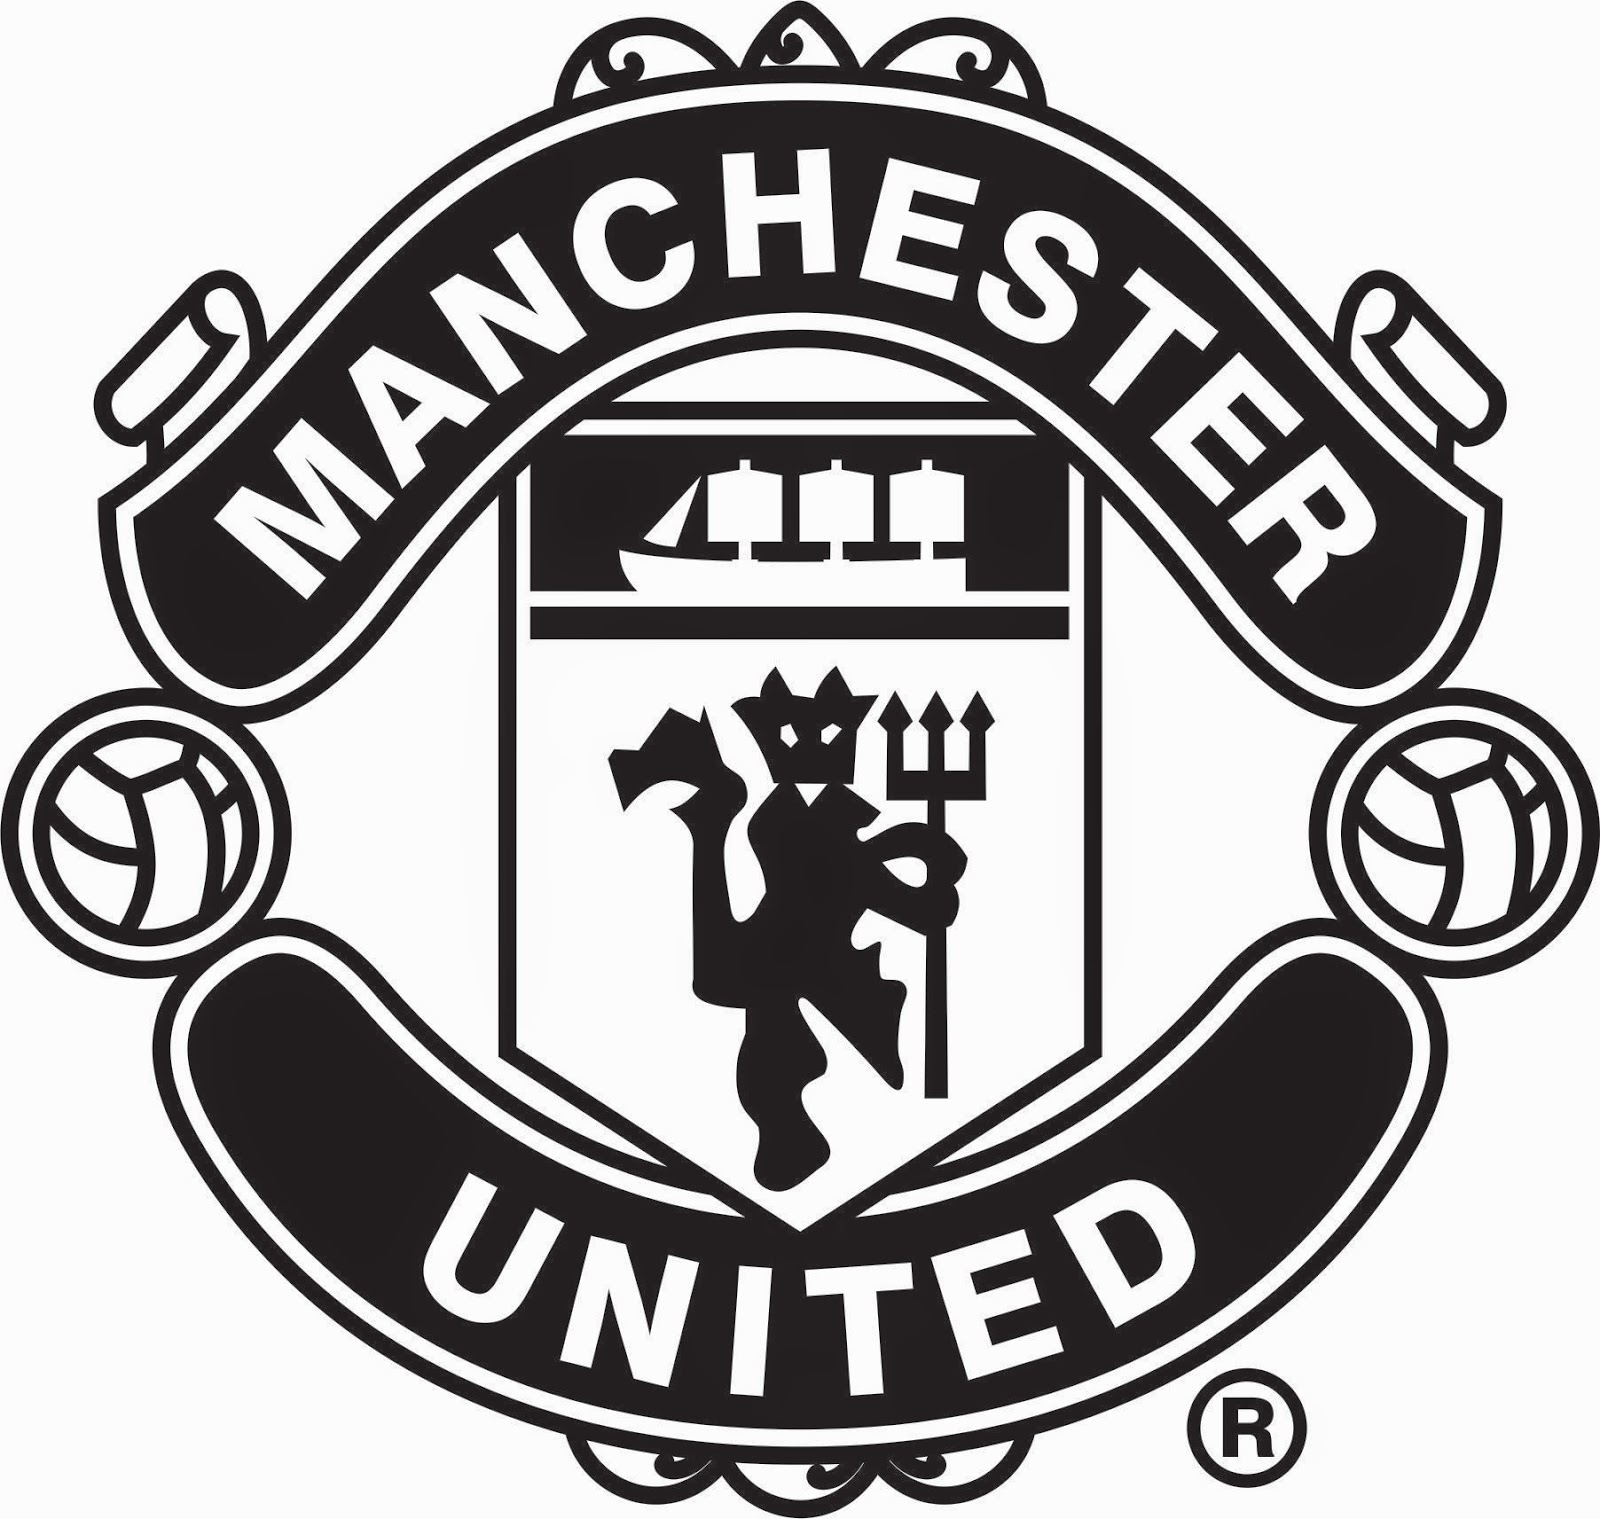 MANCHESTER UNITED LOGO VECTOR (AI,EPS,CDR) FREE DOWNLOAD